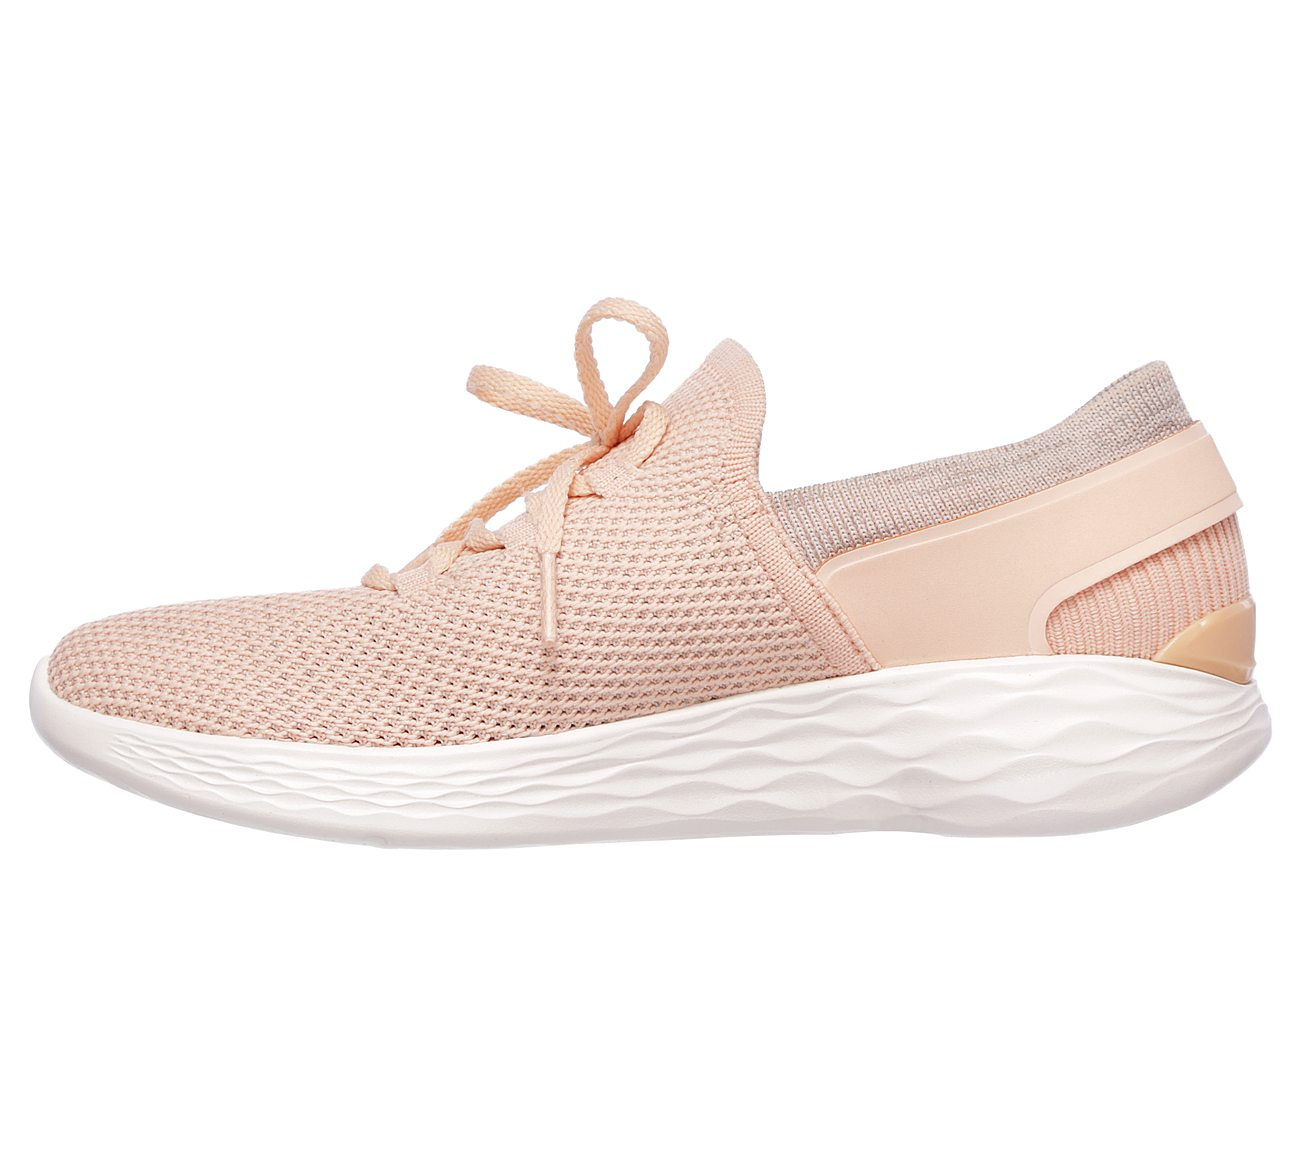 SKECHERS YOU - Spirit YOU by skechers Shoes